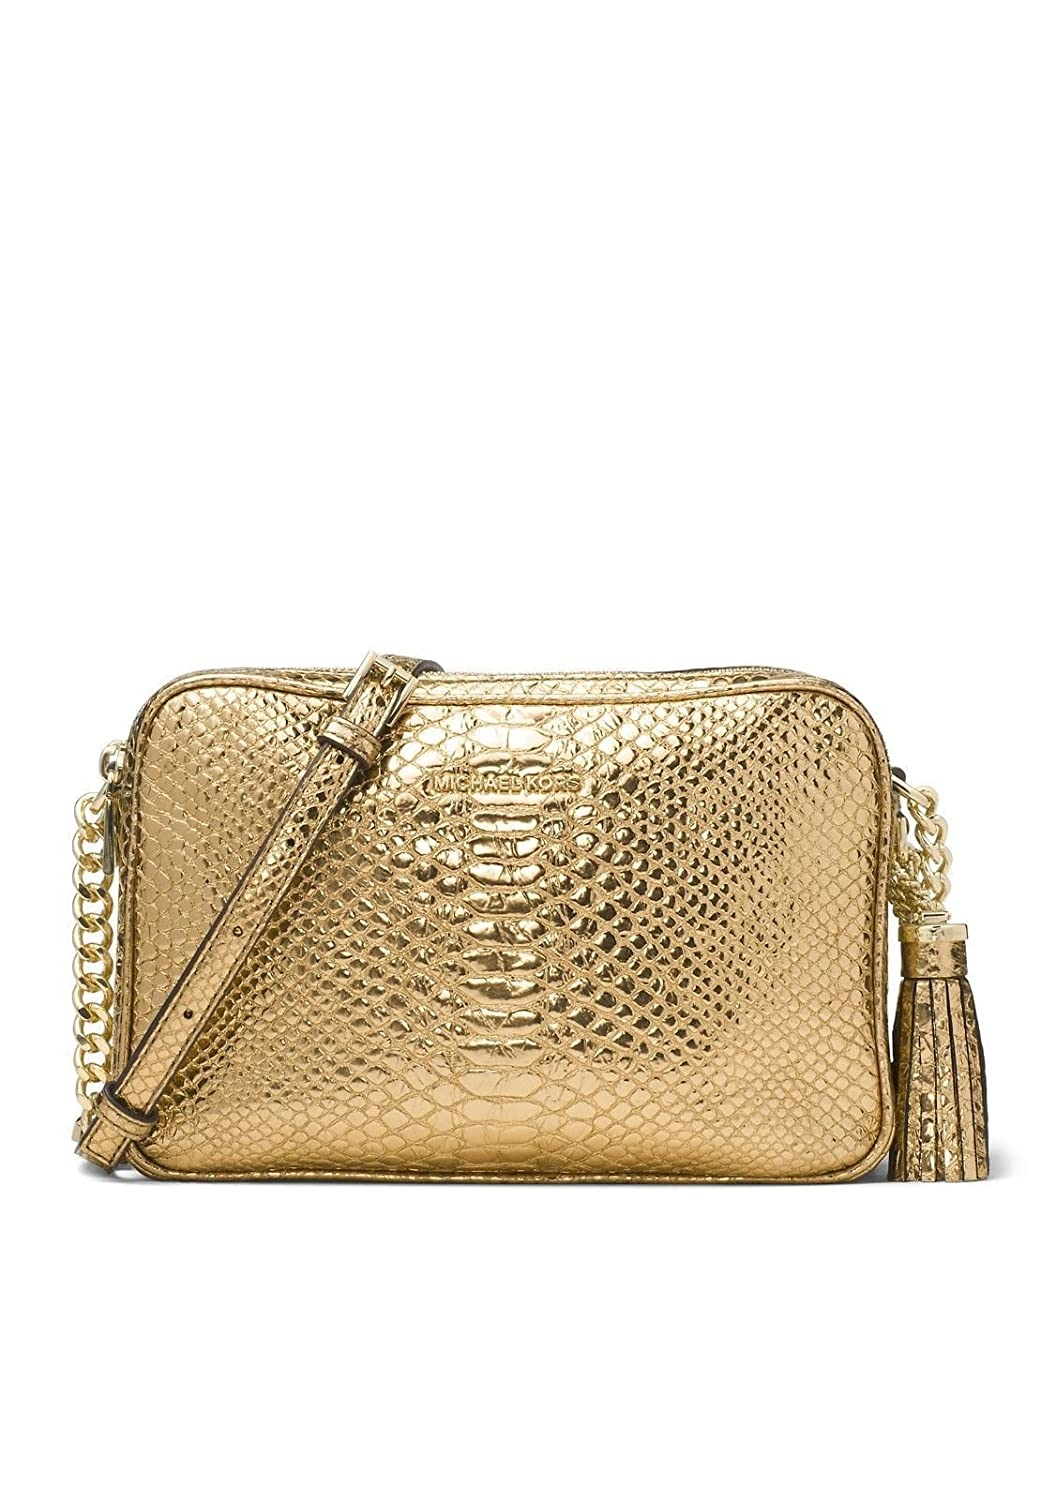 3dd0d051cc43 Michael Kors Ginny Large Embossed Leather Crossbody Camera Bag - Gold:  Handbags: Amazon.com